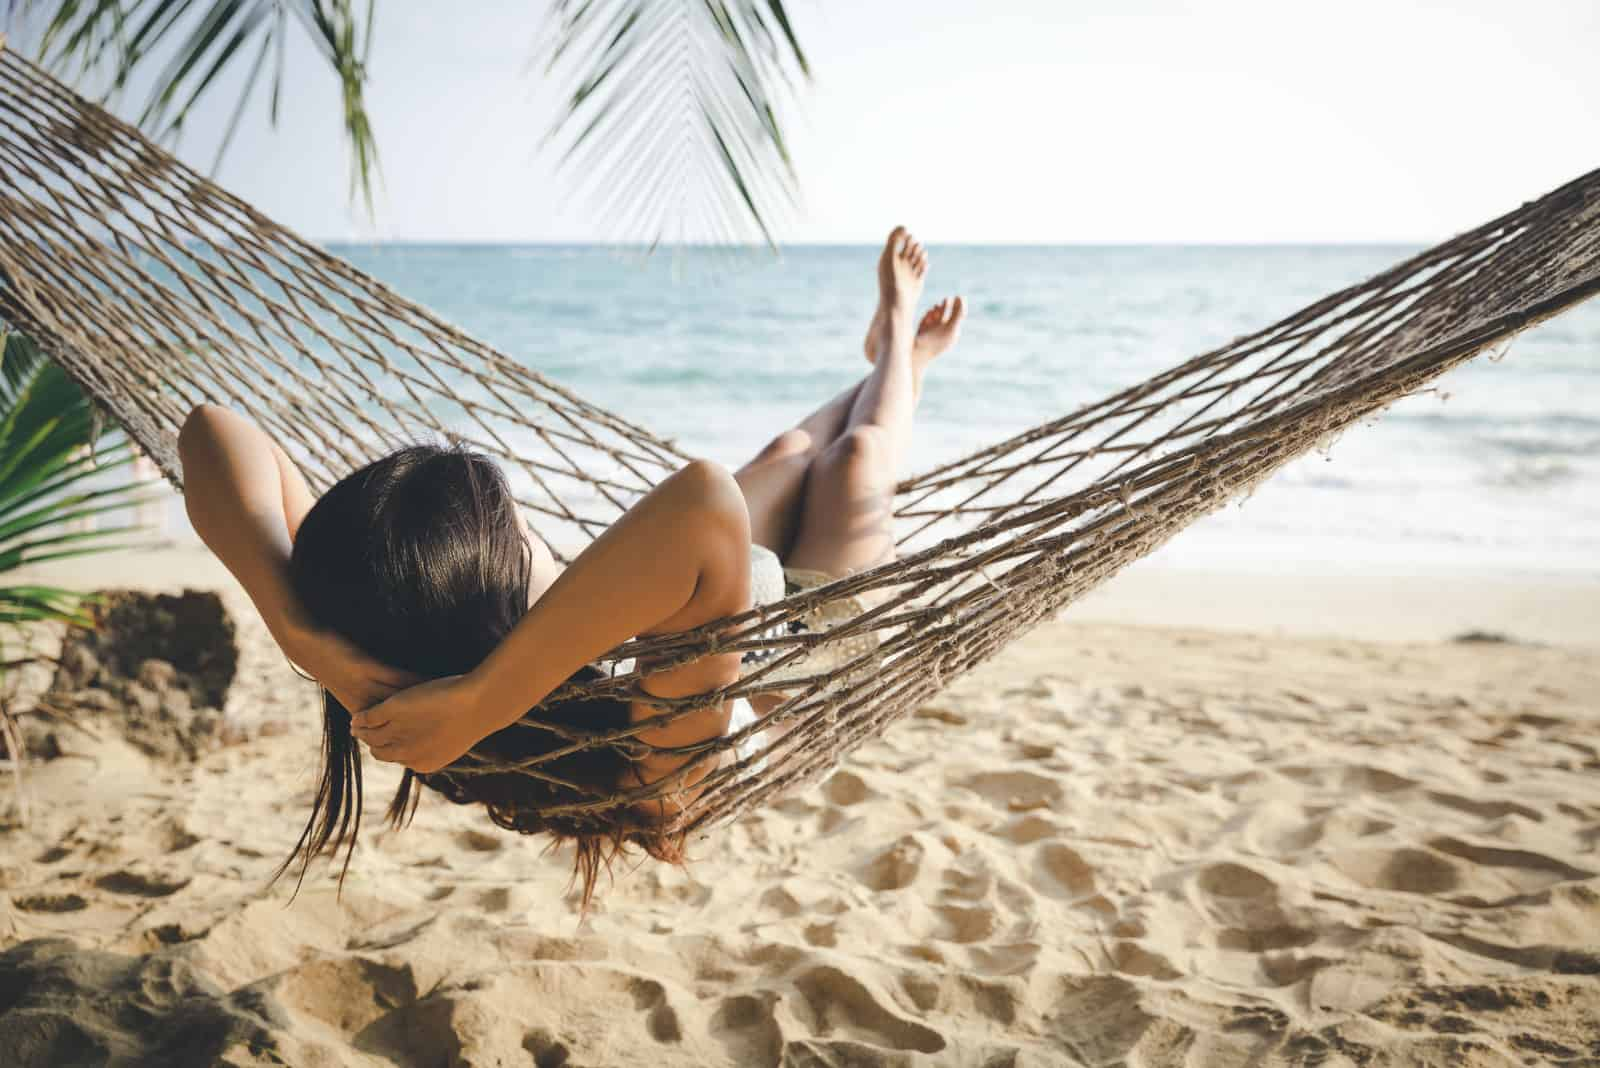 the woman is lying on a deck chair